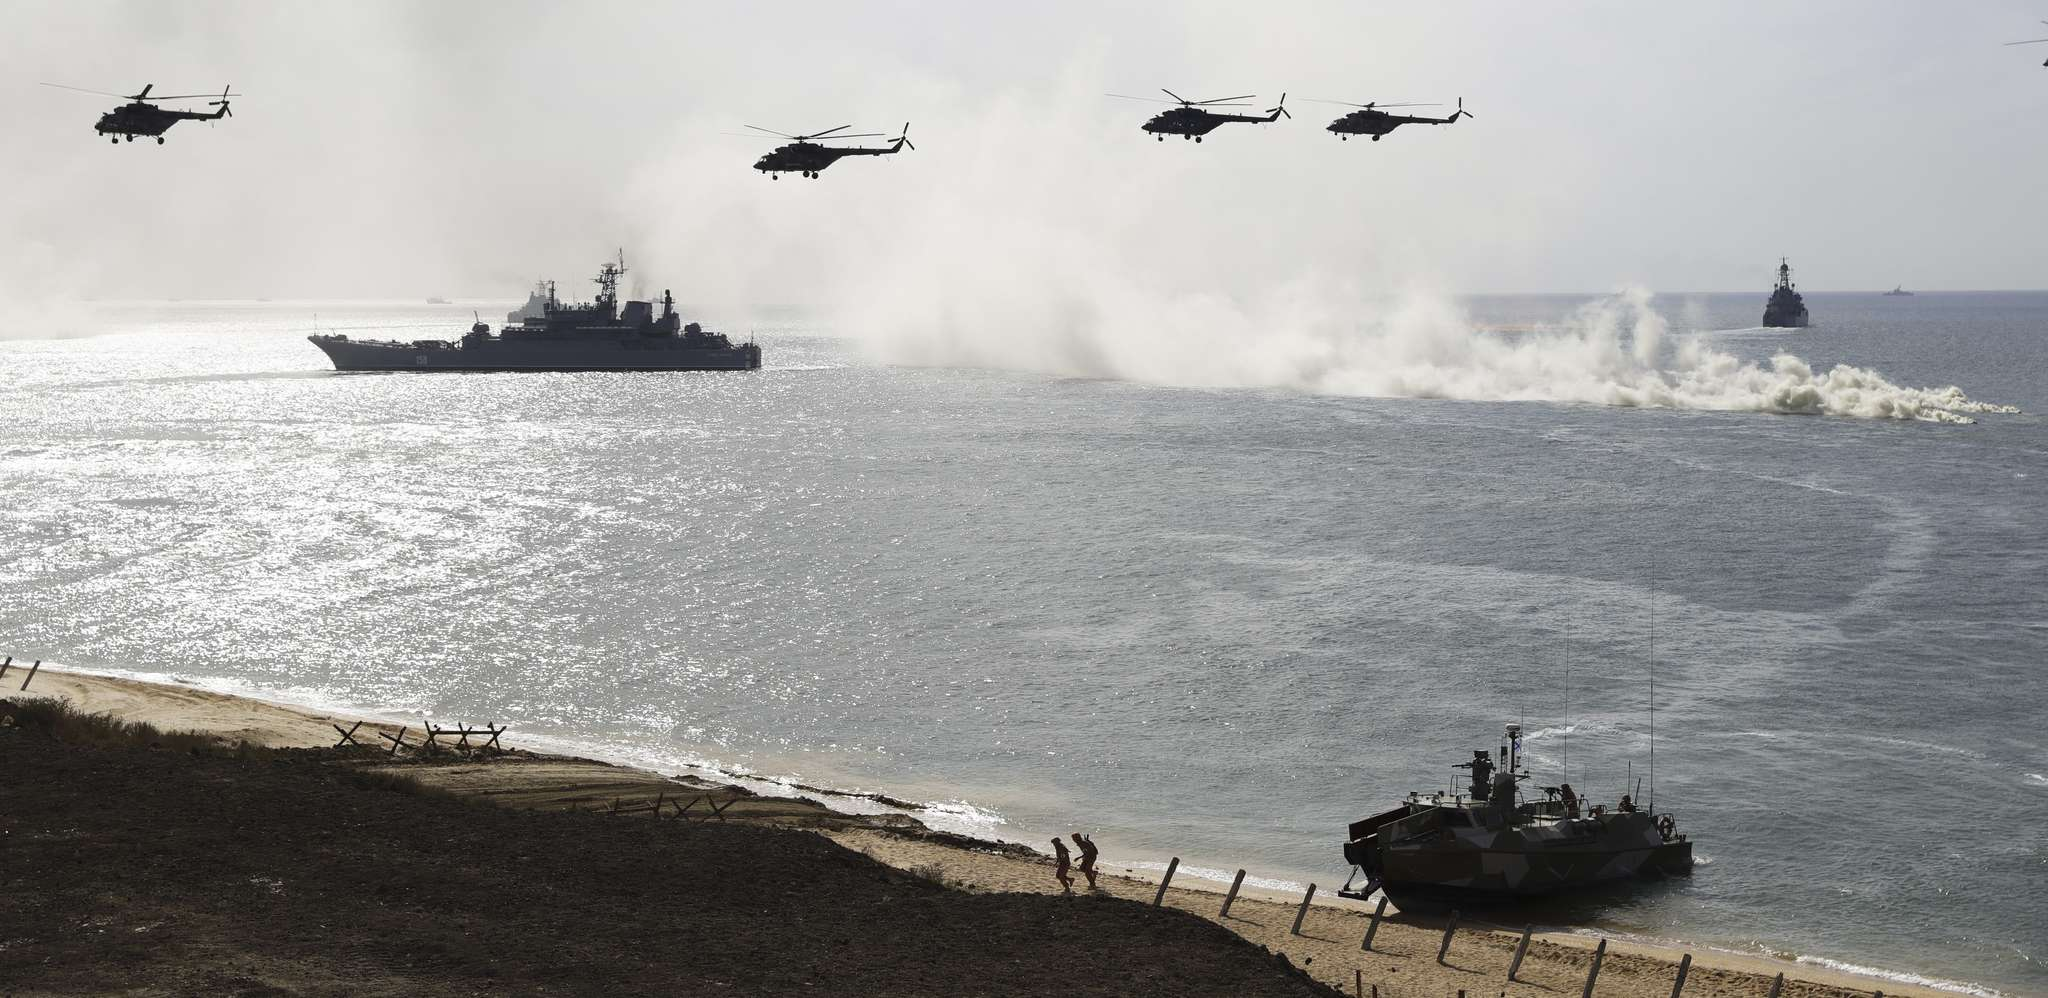 Russian military ships and helicopters taking part in drills at the Black Sea coast of Crimea in September.